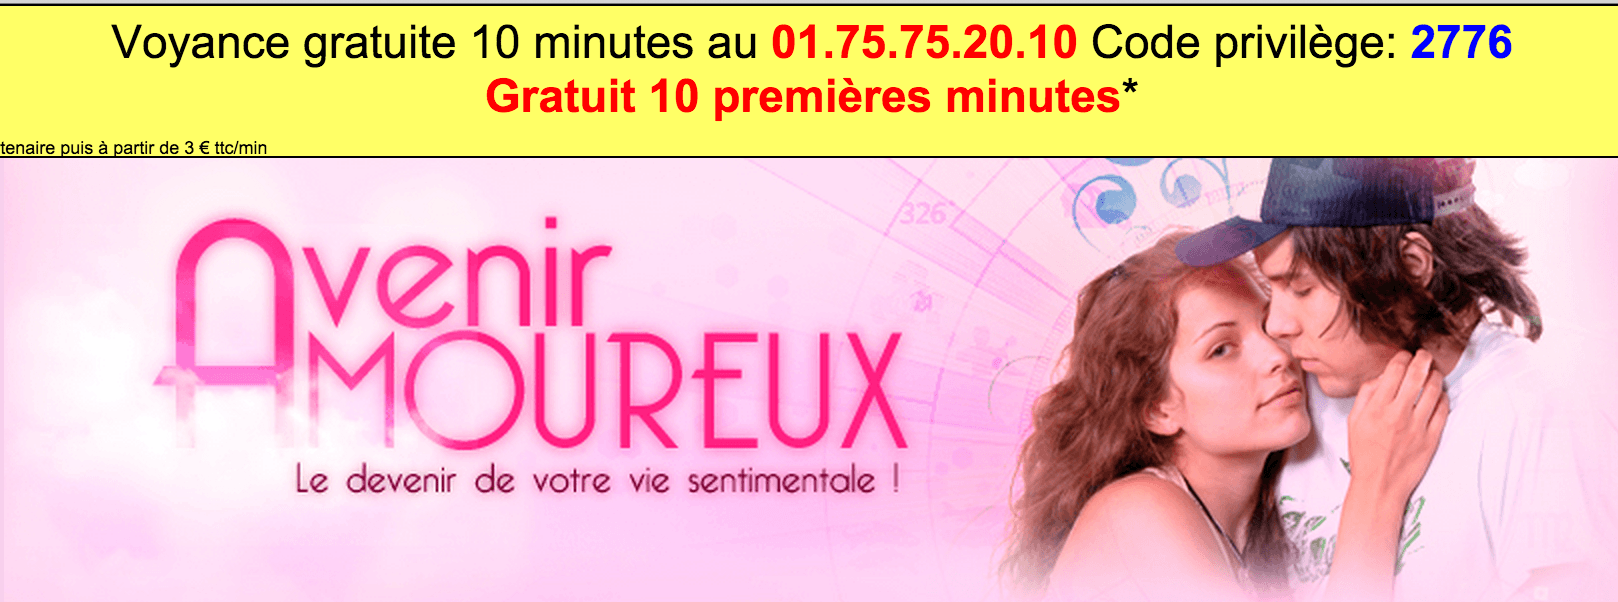 site de drague gratuit site de rencontre facile